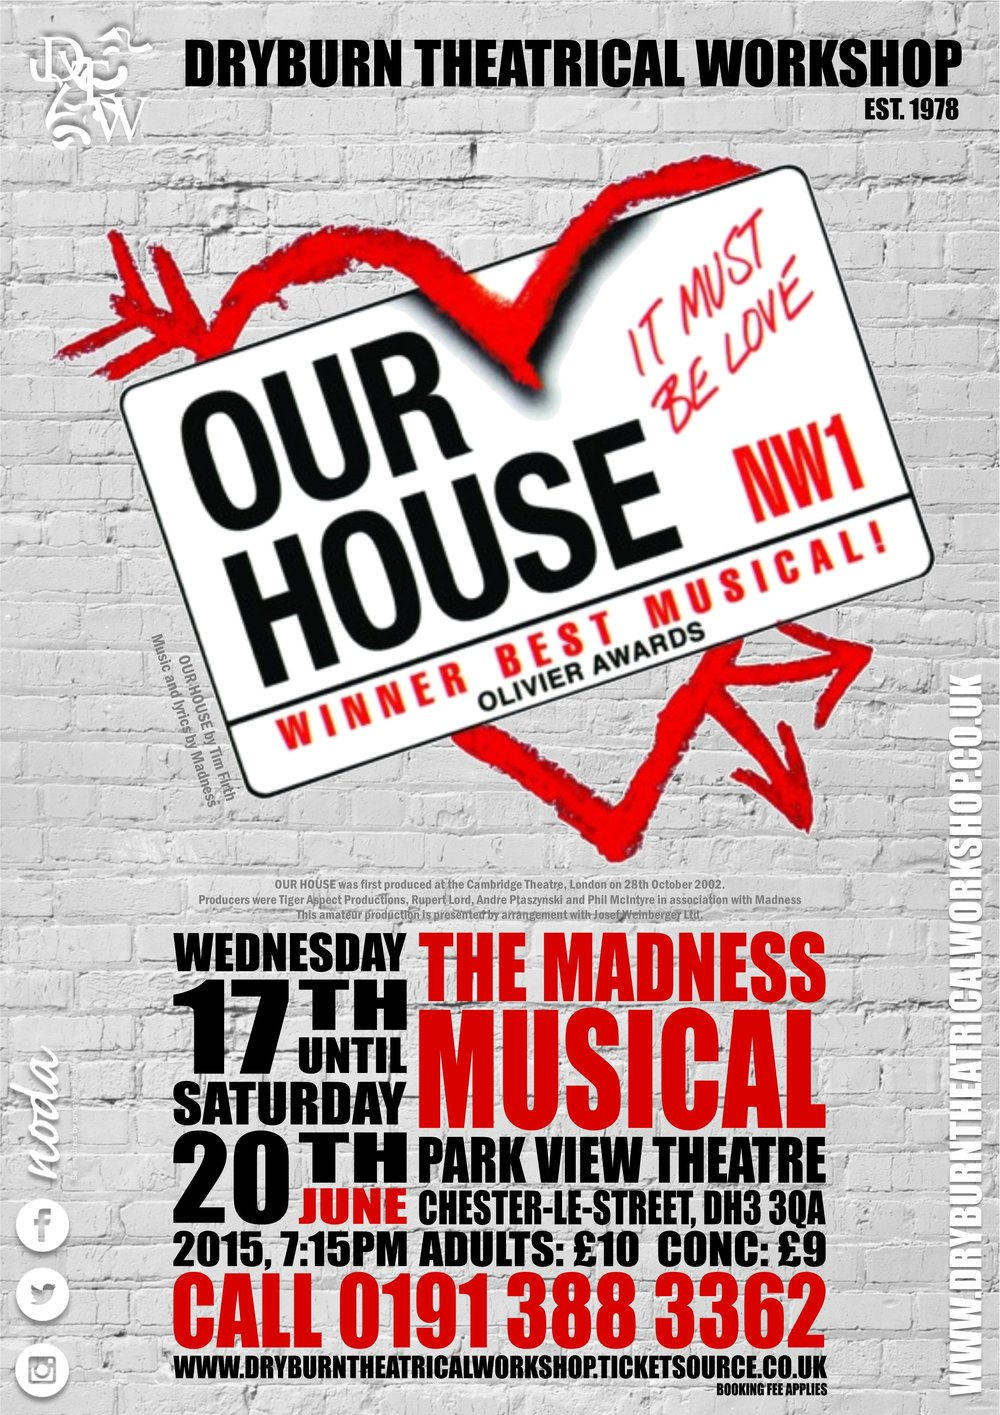 Our House Poster (IMAGE).jpg